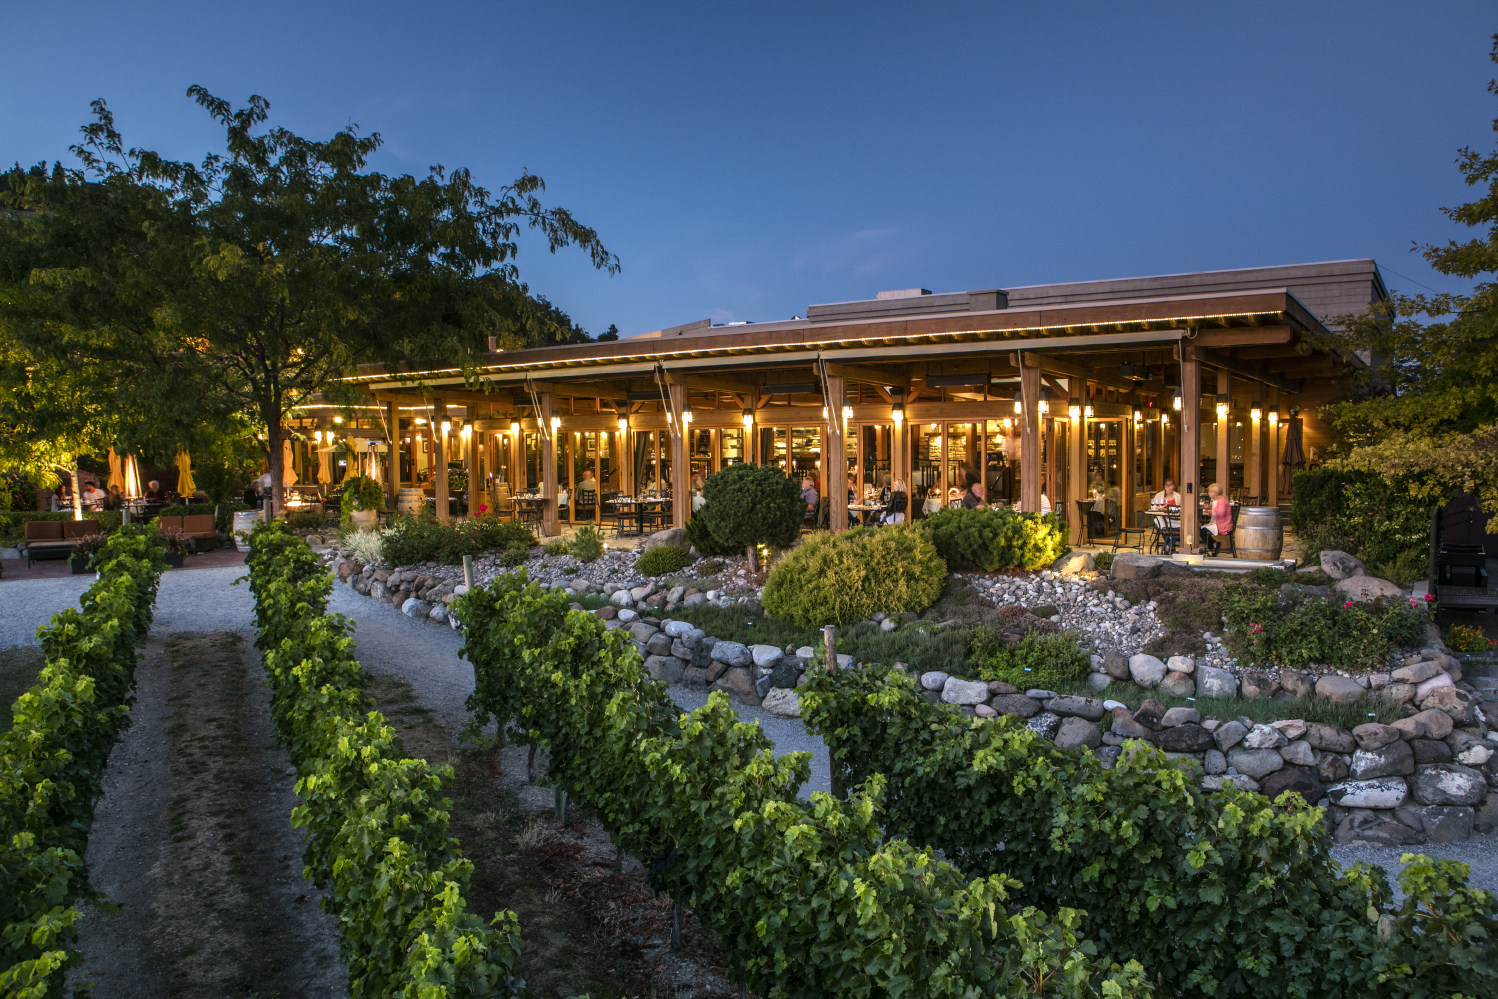 Dine in one of the best restaurants in the Okanagan – Old Vines Restaurant at Quails' Gate